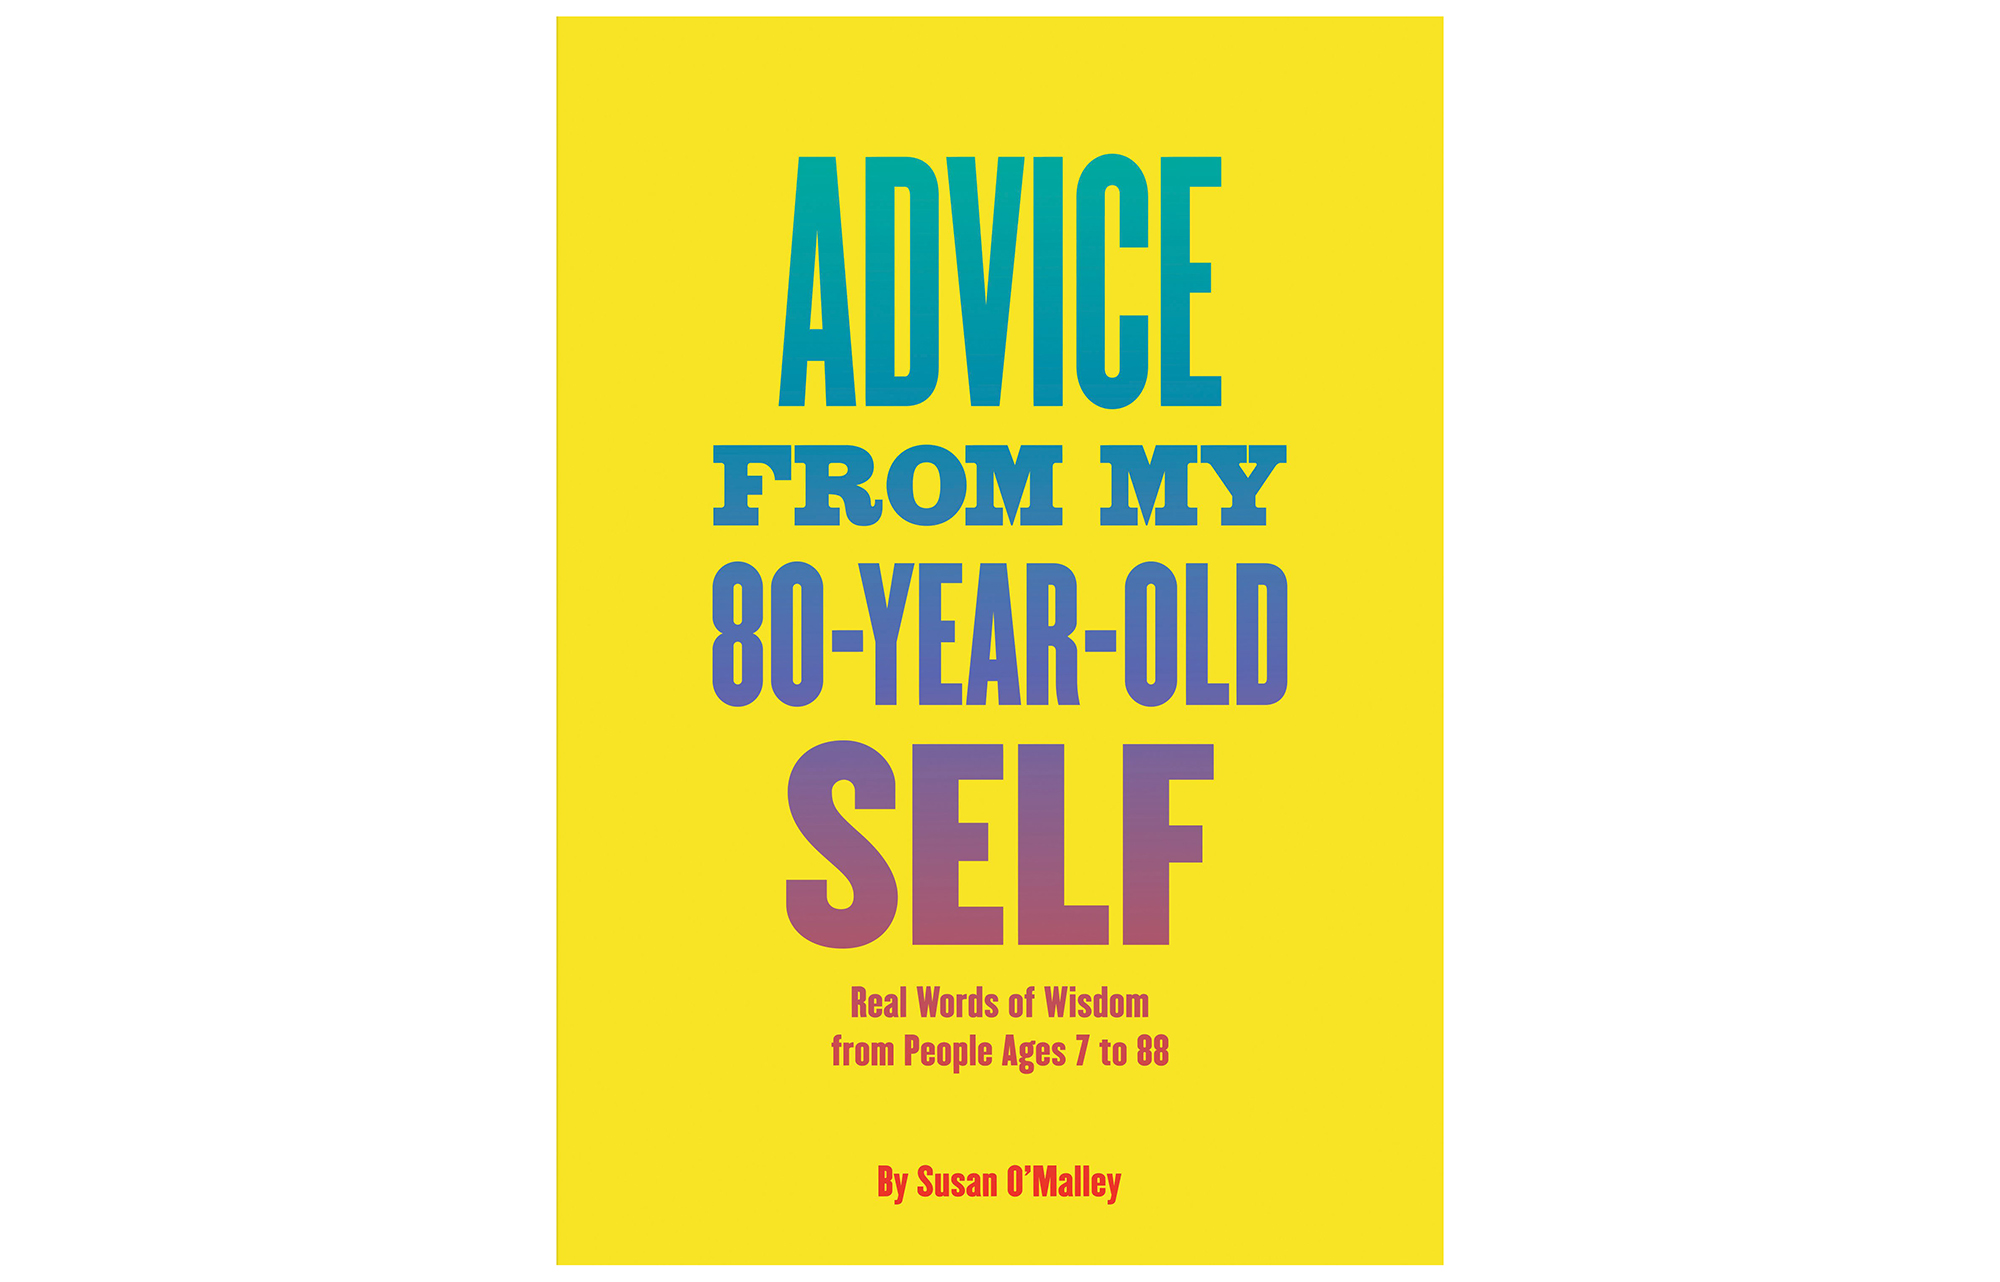 Advice From My 80-Year-Old Self, by Susan O'Malley